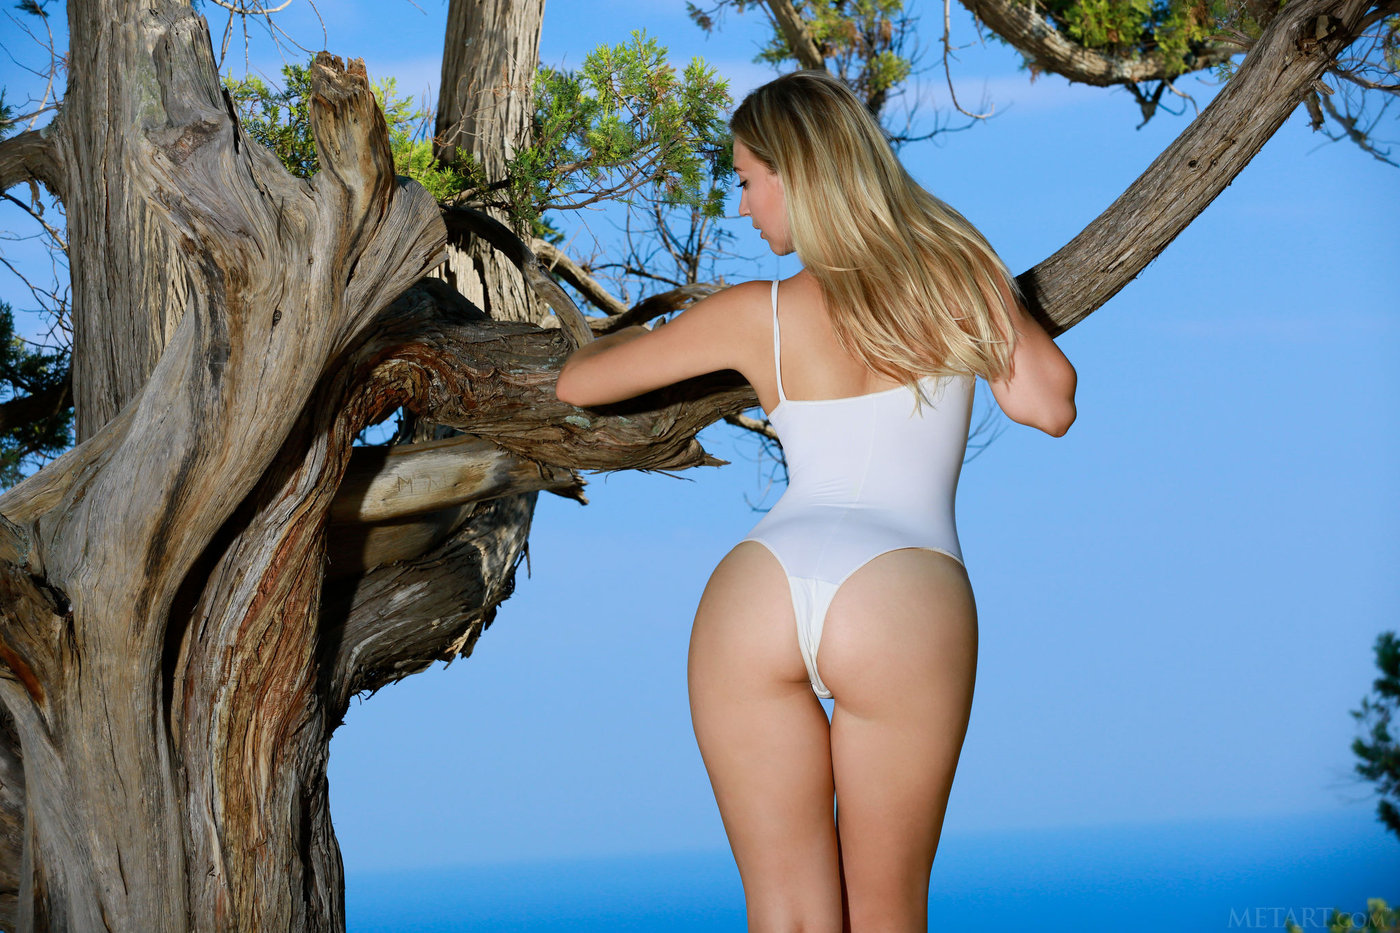 Long-legged blonde takes off her white bathing suit and climbs a tree